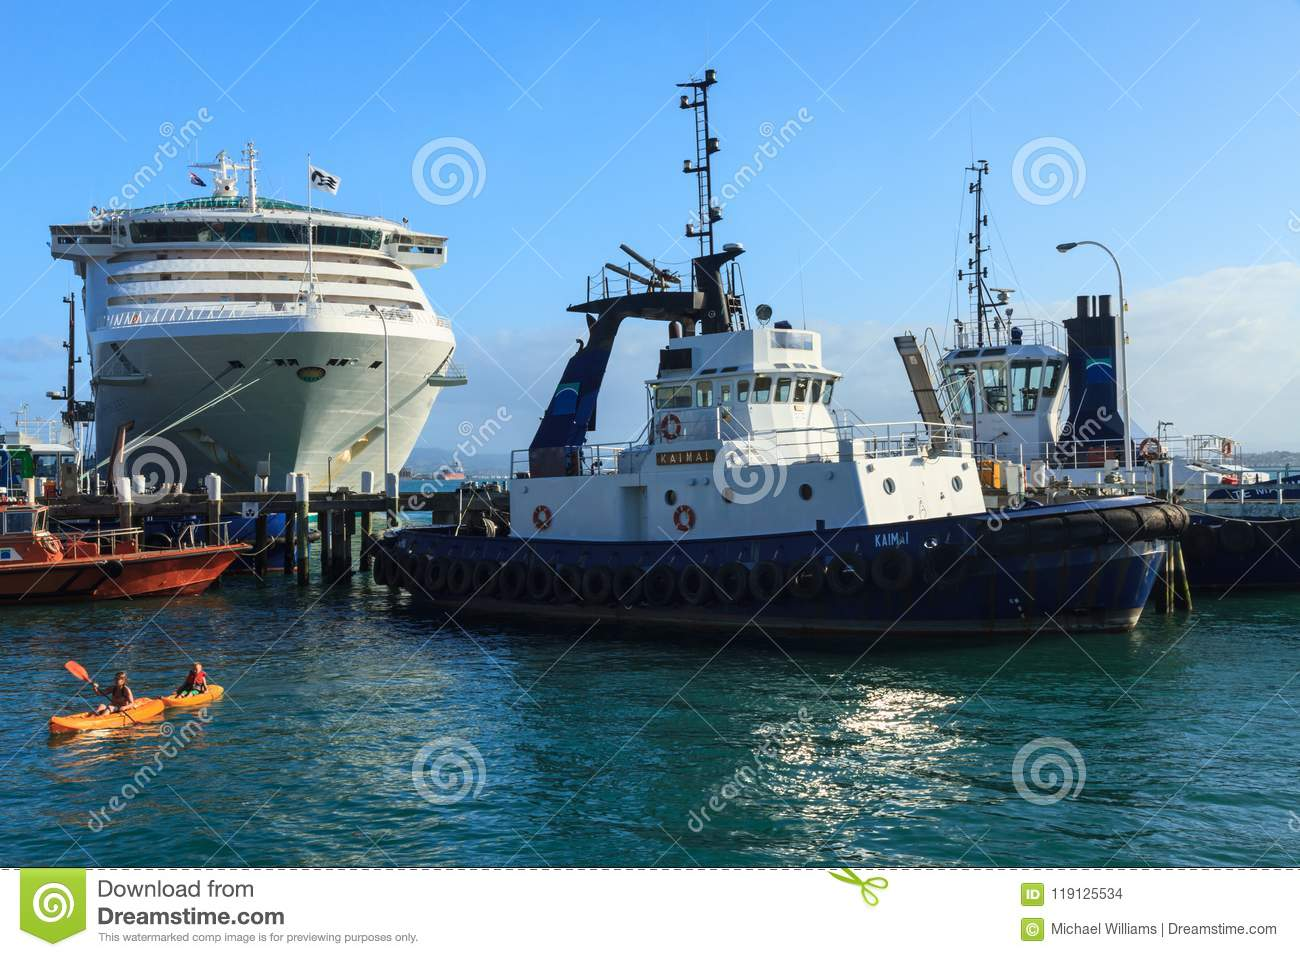 A cruise liner, tugboats, and kayakers in a harbor